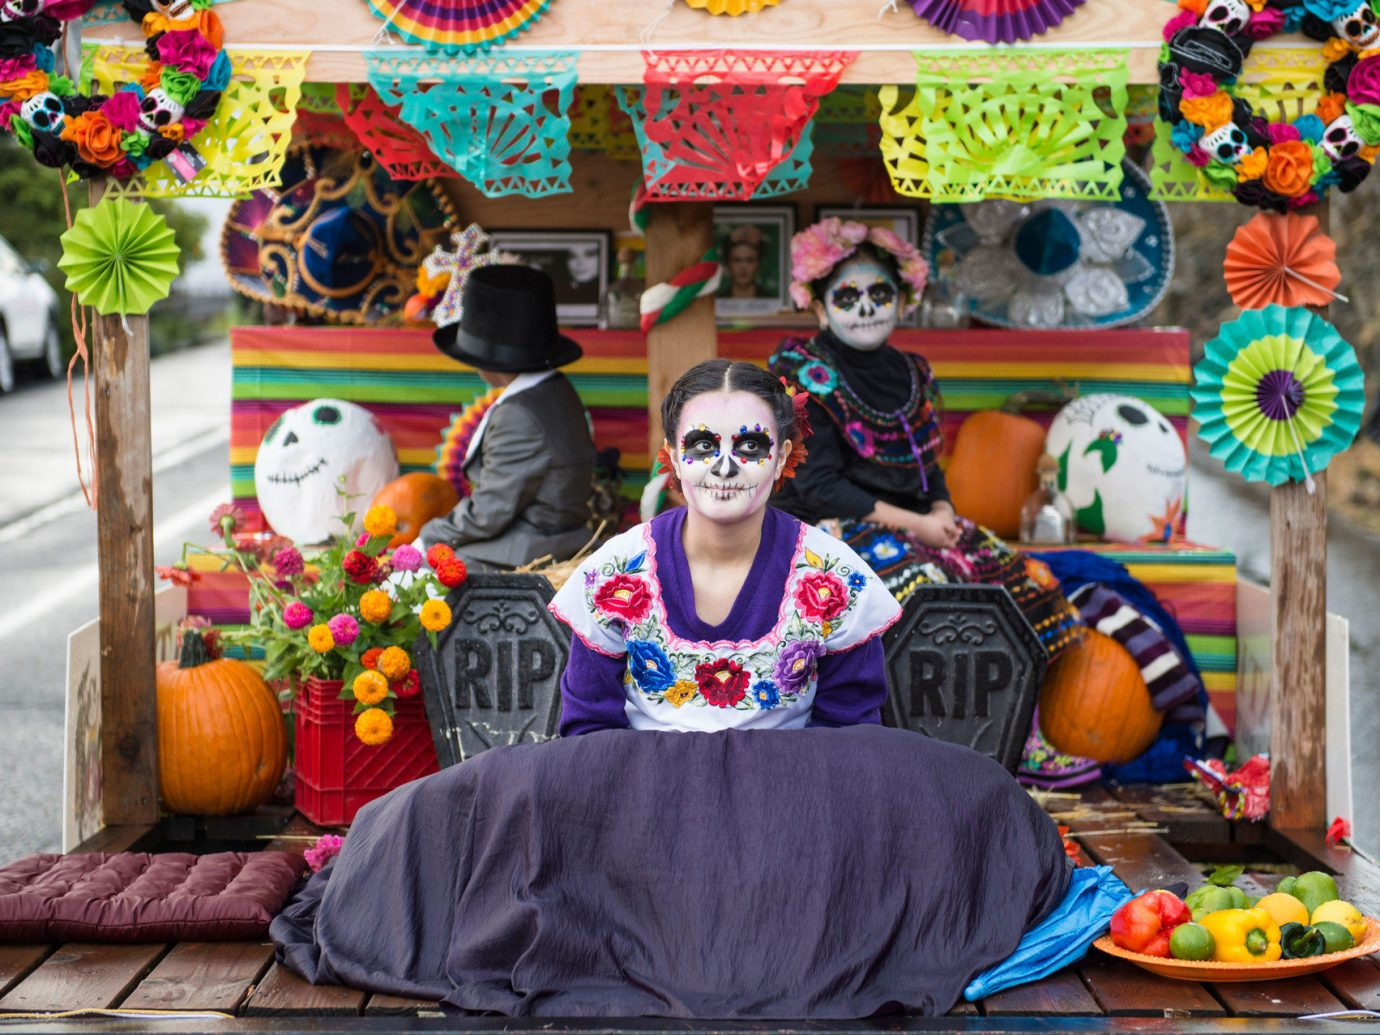 Arts + Culture colorful costume Cultural culture day of the dead dia de los muertos festival festive fun halloween holiday parade people tradition traditional Trip Ideas color carnival event colored decorated